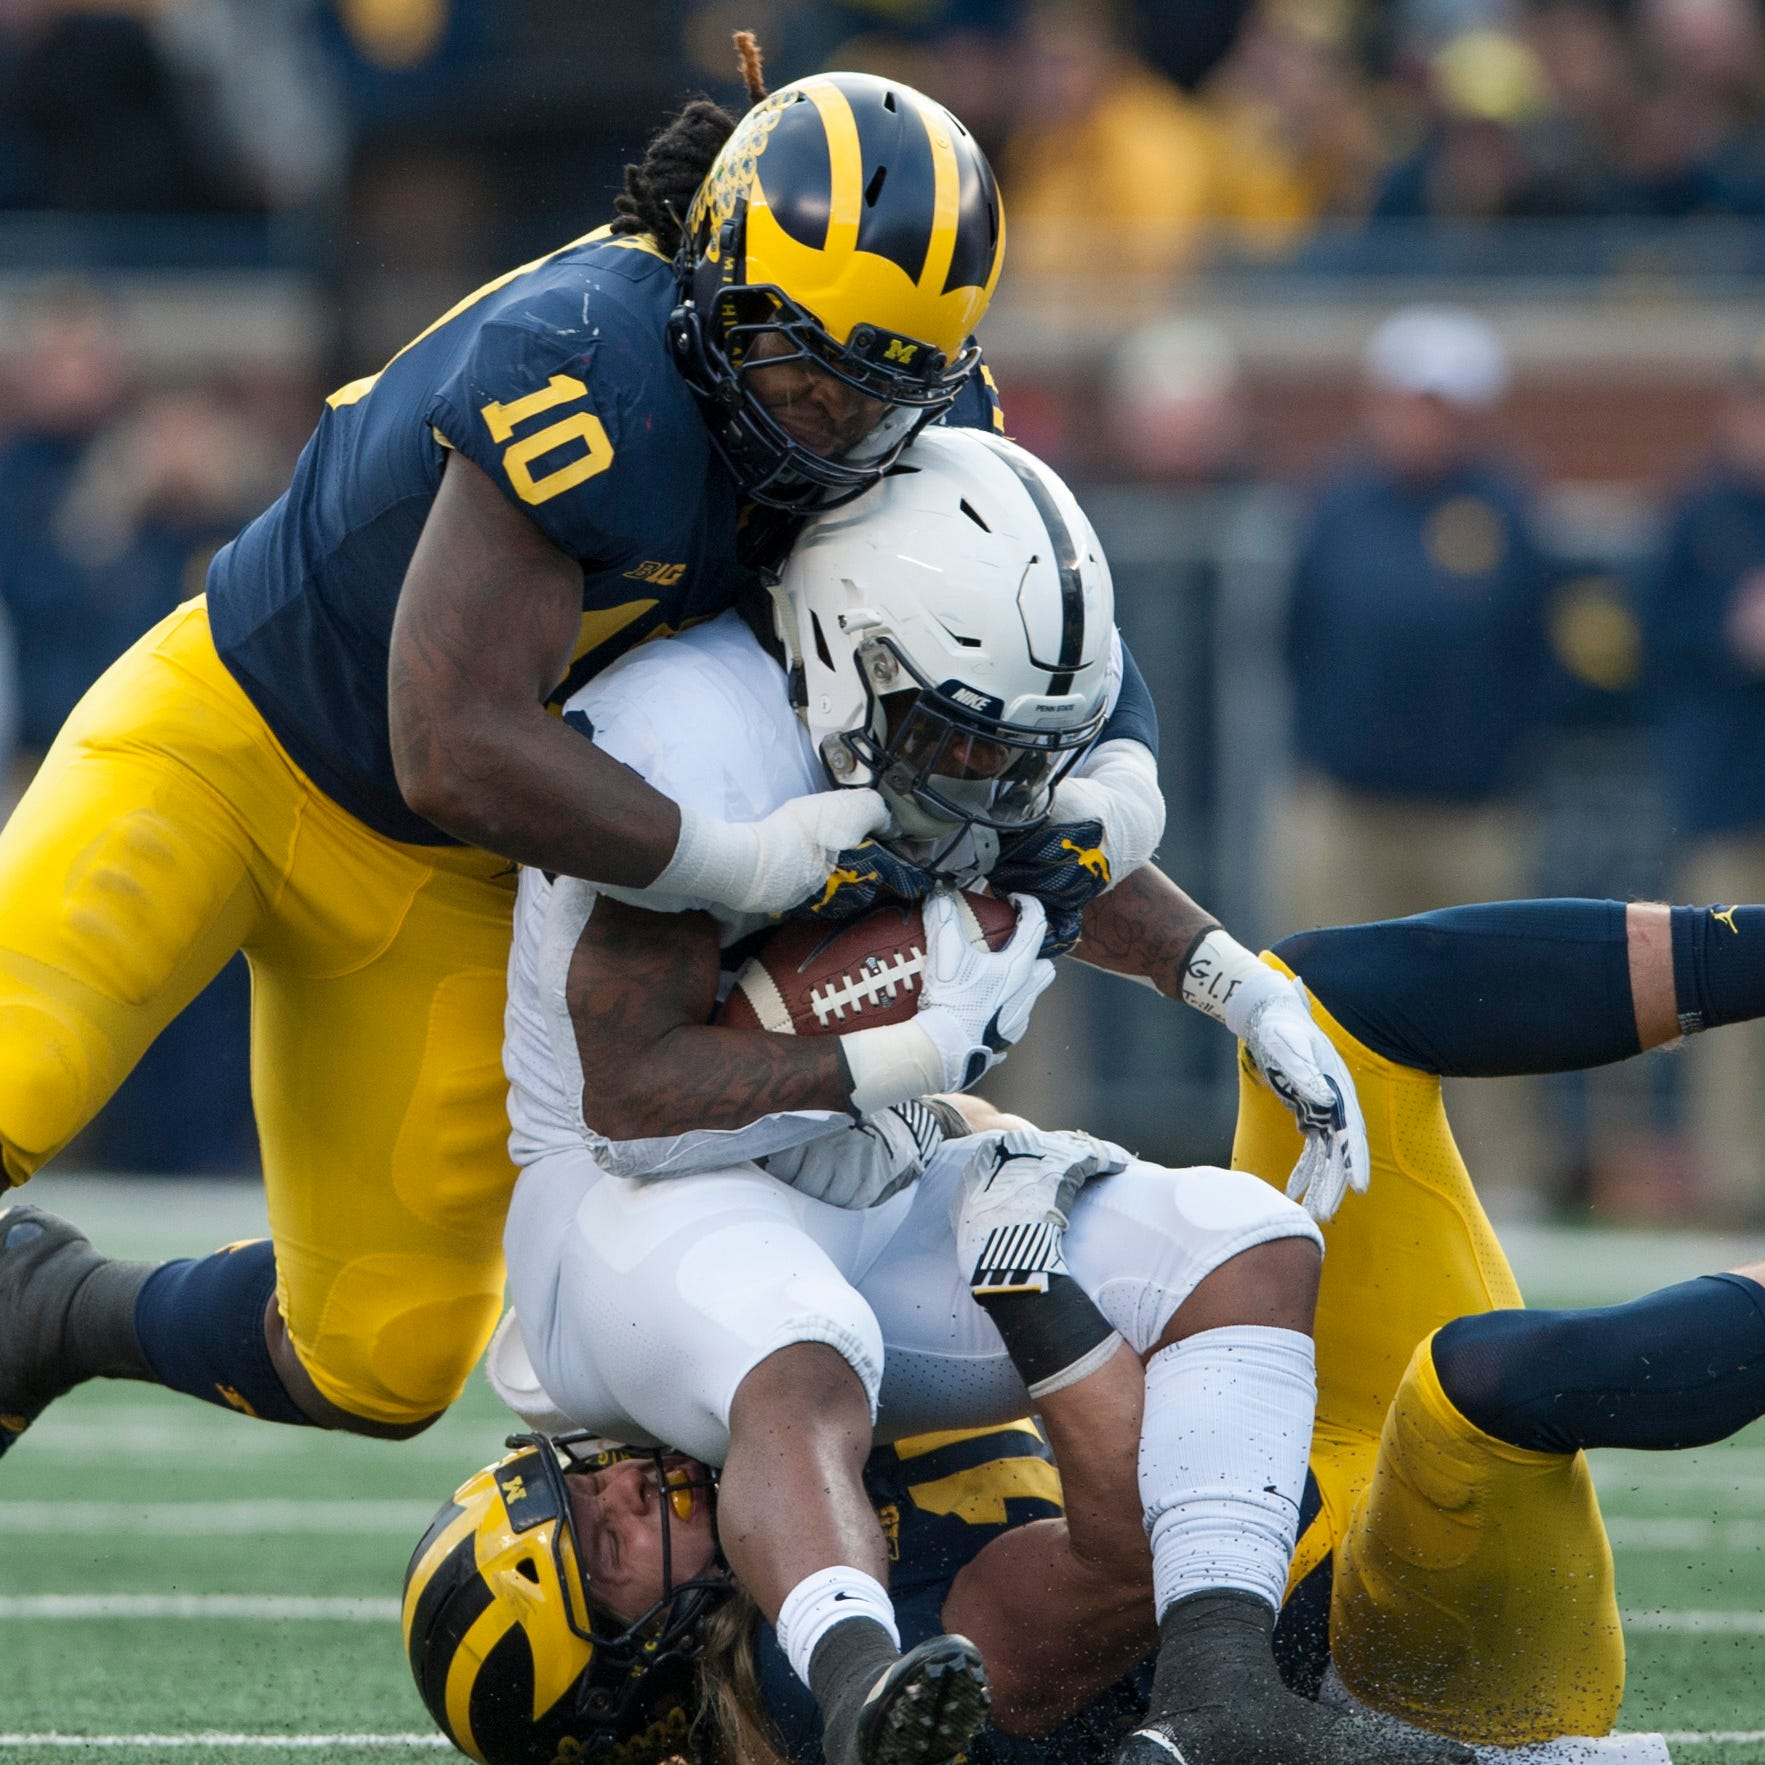 Michigan linebacker Devin Bush to skip senior season, enter NFL Draft